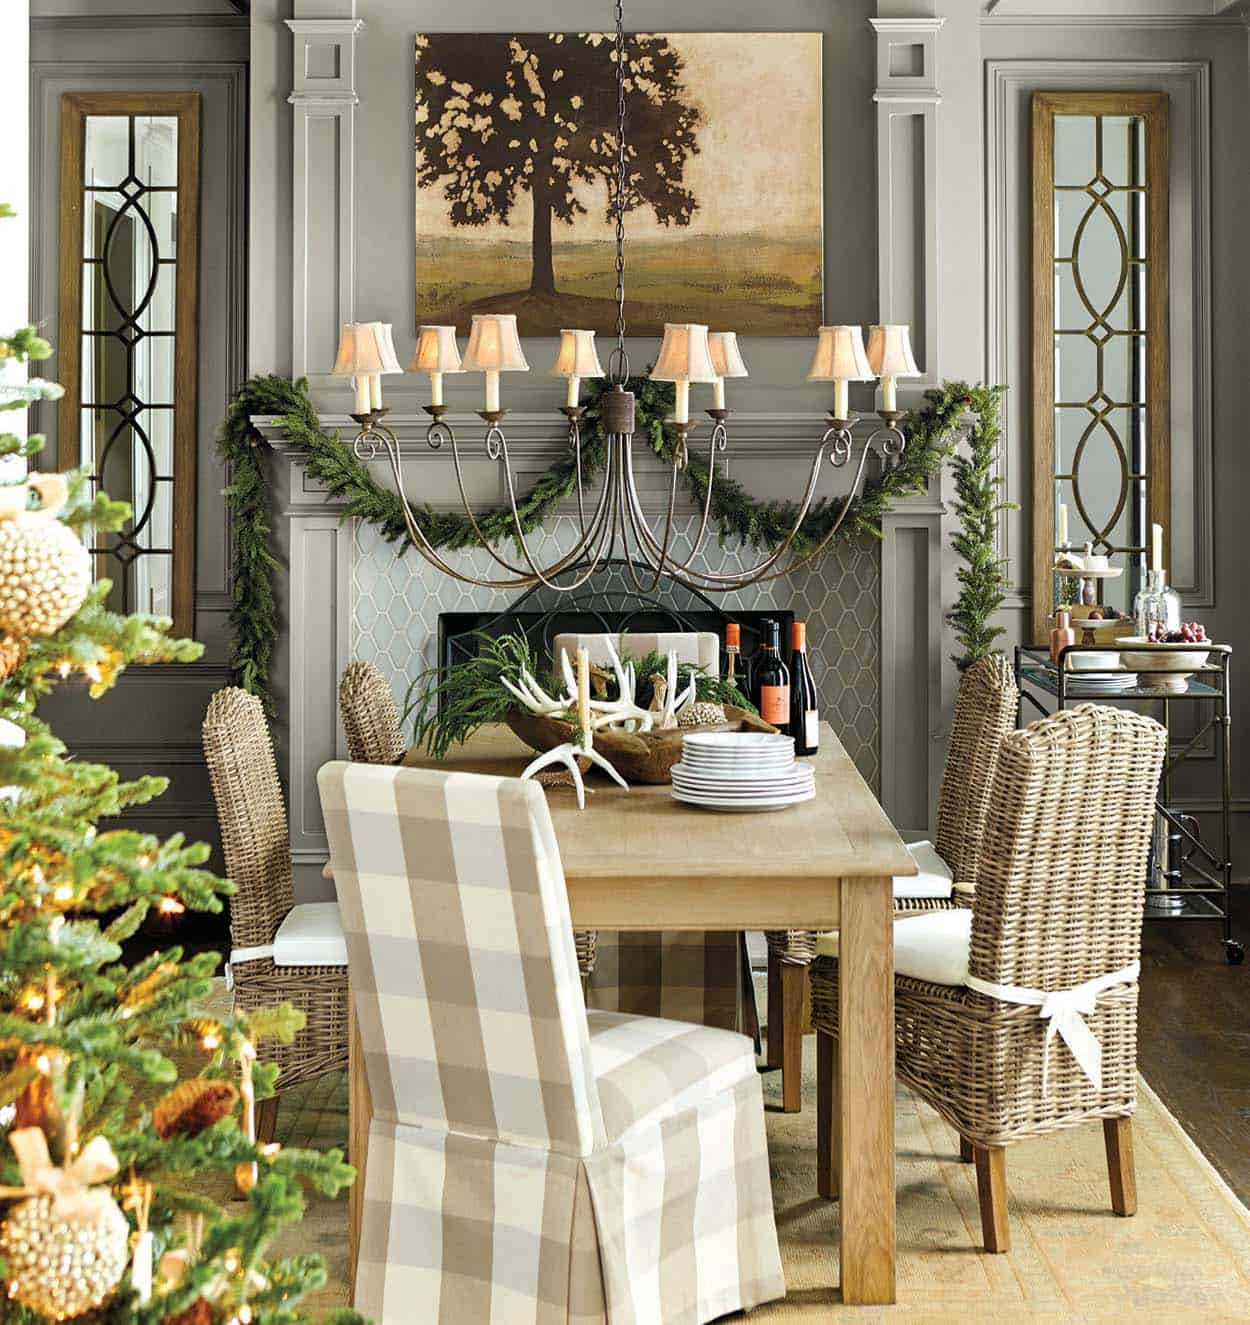 christmas-decor-ideas-rustic-country-18-1-kindesign